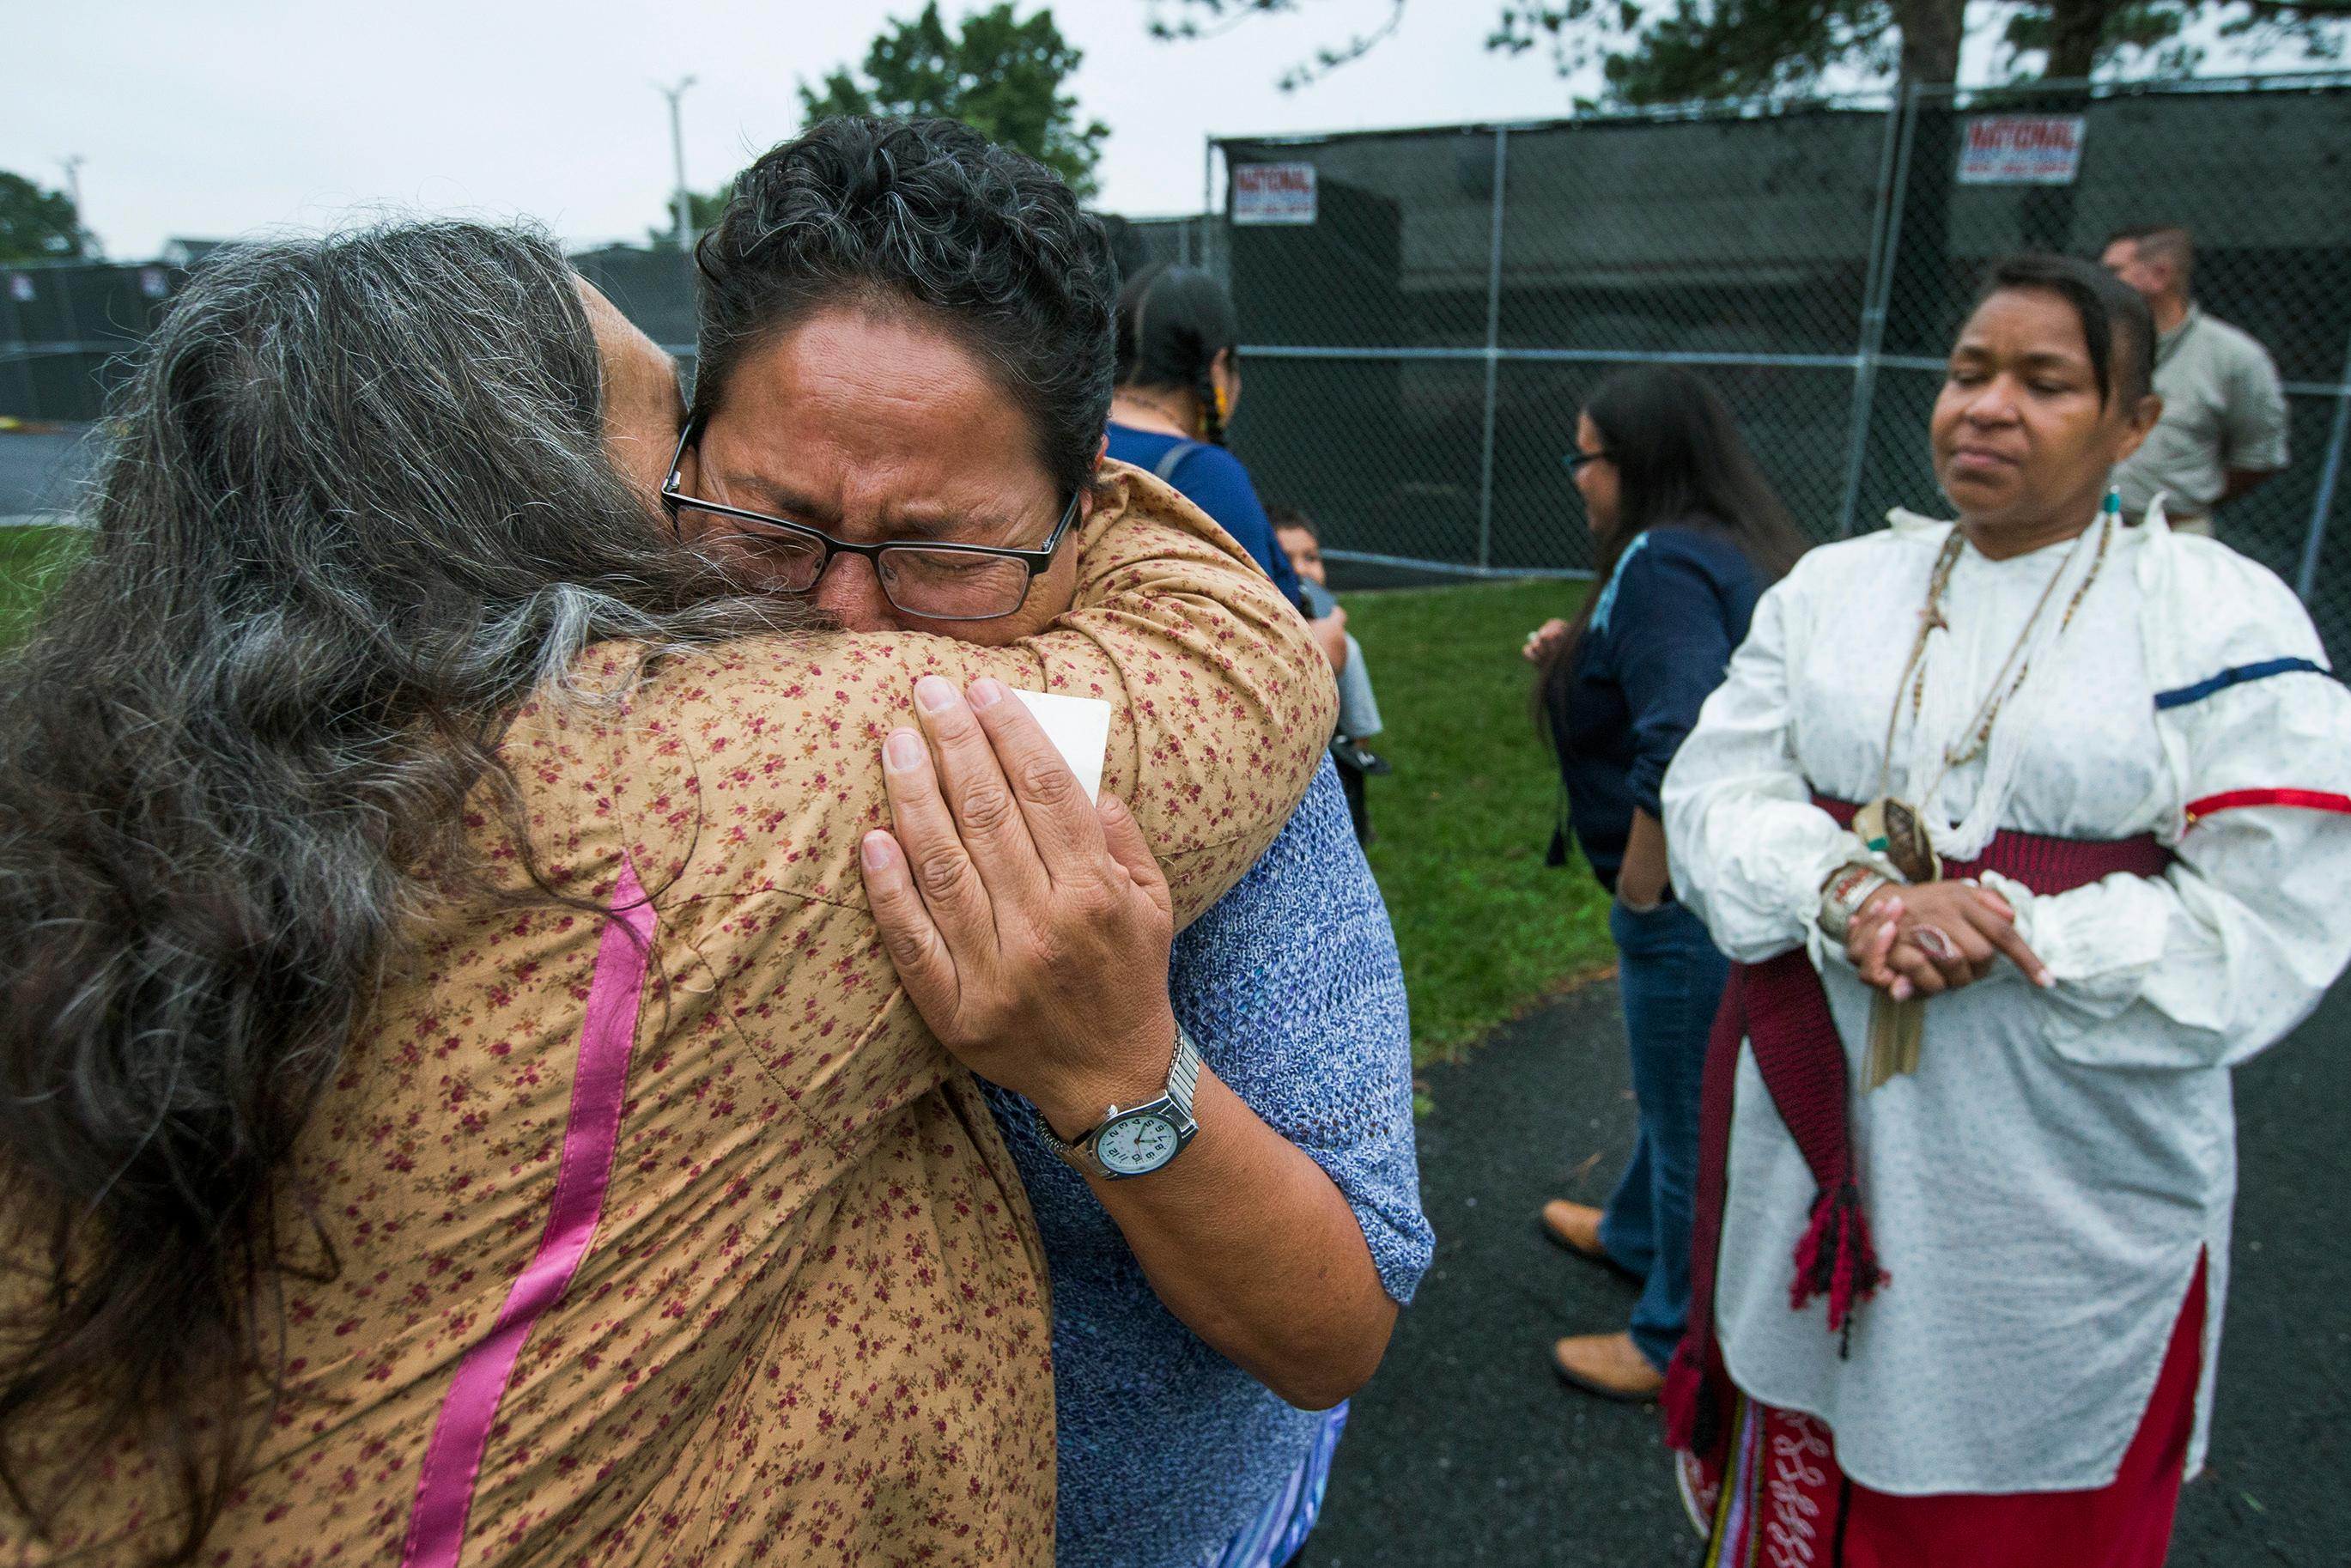 FILE - In this Monday, Aug. 7, 2017 file photo, Millie Friday, a descendent of Little Plume, a Native American student who was taken from his family and forced to go to boarding school, is comforted by Barbara Andrews-Christy of Circle Legacy Center, as Aílice Hall looks during a gathering on the grounds of the Carlisle Barracks, in Carlisle, Pa. (Charles Fox/The Philadelphia Inquirer via AP, File)